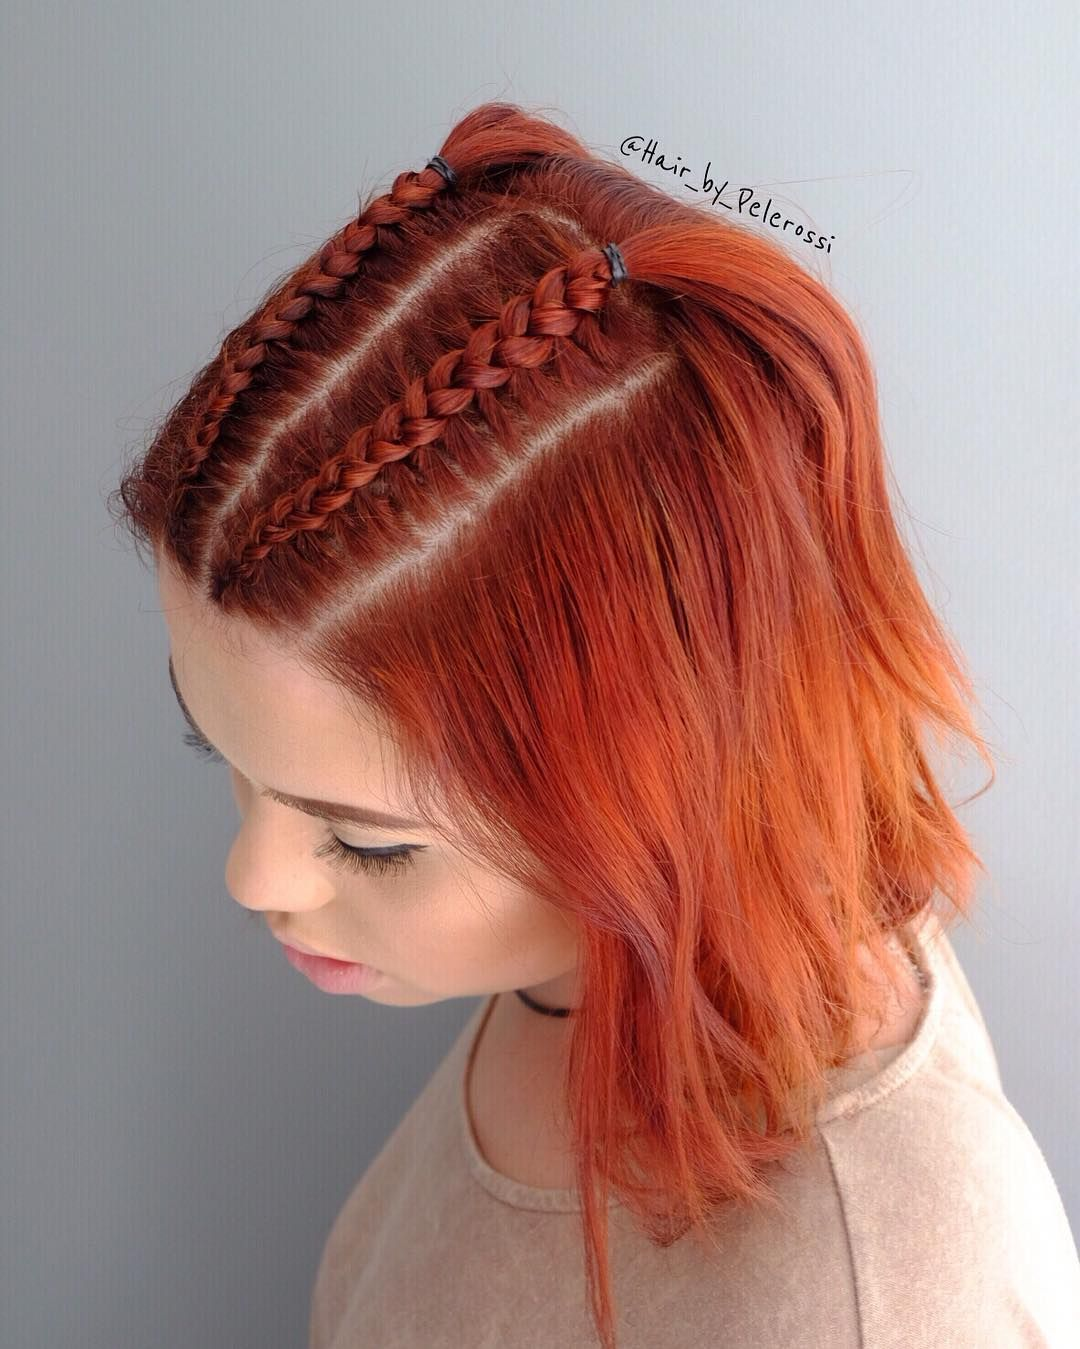 30 Stunning Braided Short Hairstyles Cute Hairstyles For Short